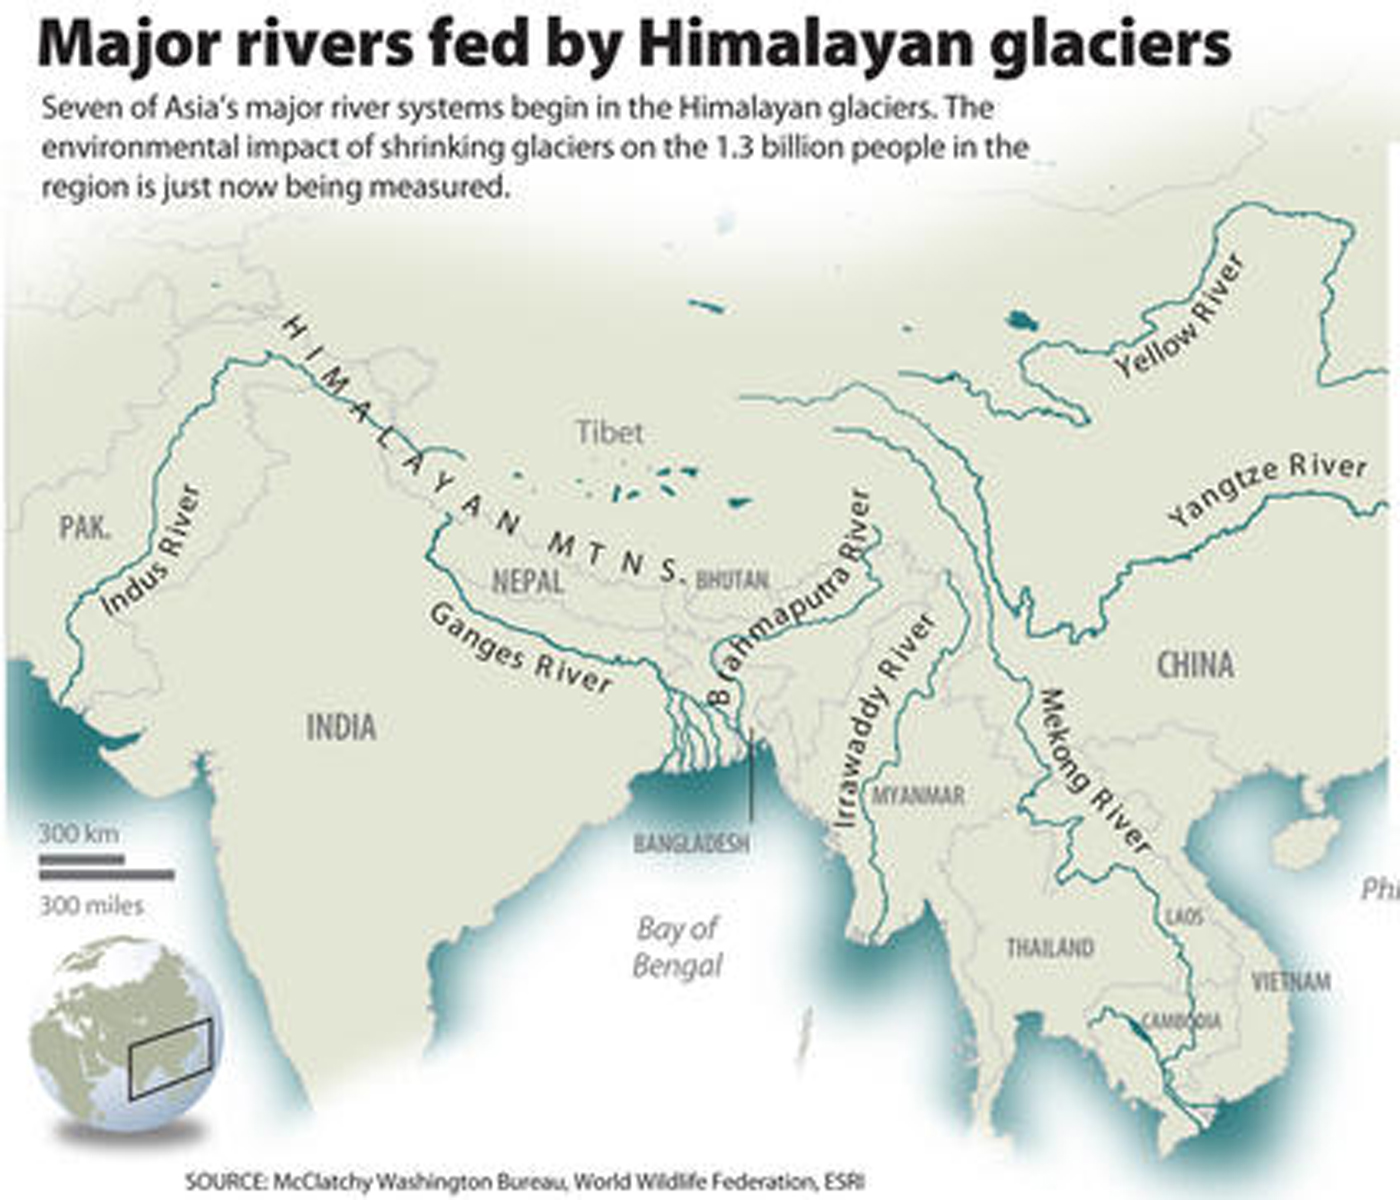 History  Repeating How The Name Of A River Represents. Most Affordable Auto Insurance Companies. Online Social Work Programs Accredited. Used Prius For Sale Ct Windows 7 No Sound Fix. Miniature Button Load Cell Art Business Card. Texas Health Credit Union Cute Coffee Tumbler. Rug Cleaning Santa Monica Business Cell Plans. California Insurance Department. Fips 140 2 Level 3 Certified Ira Age Limit